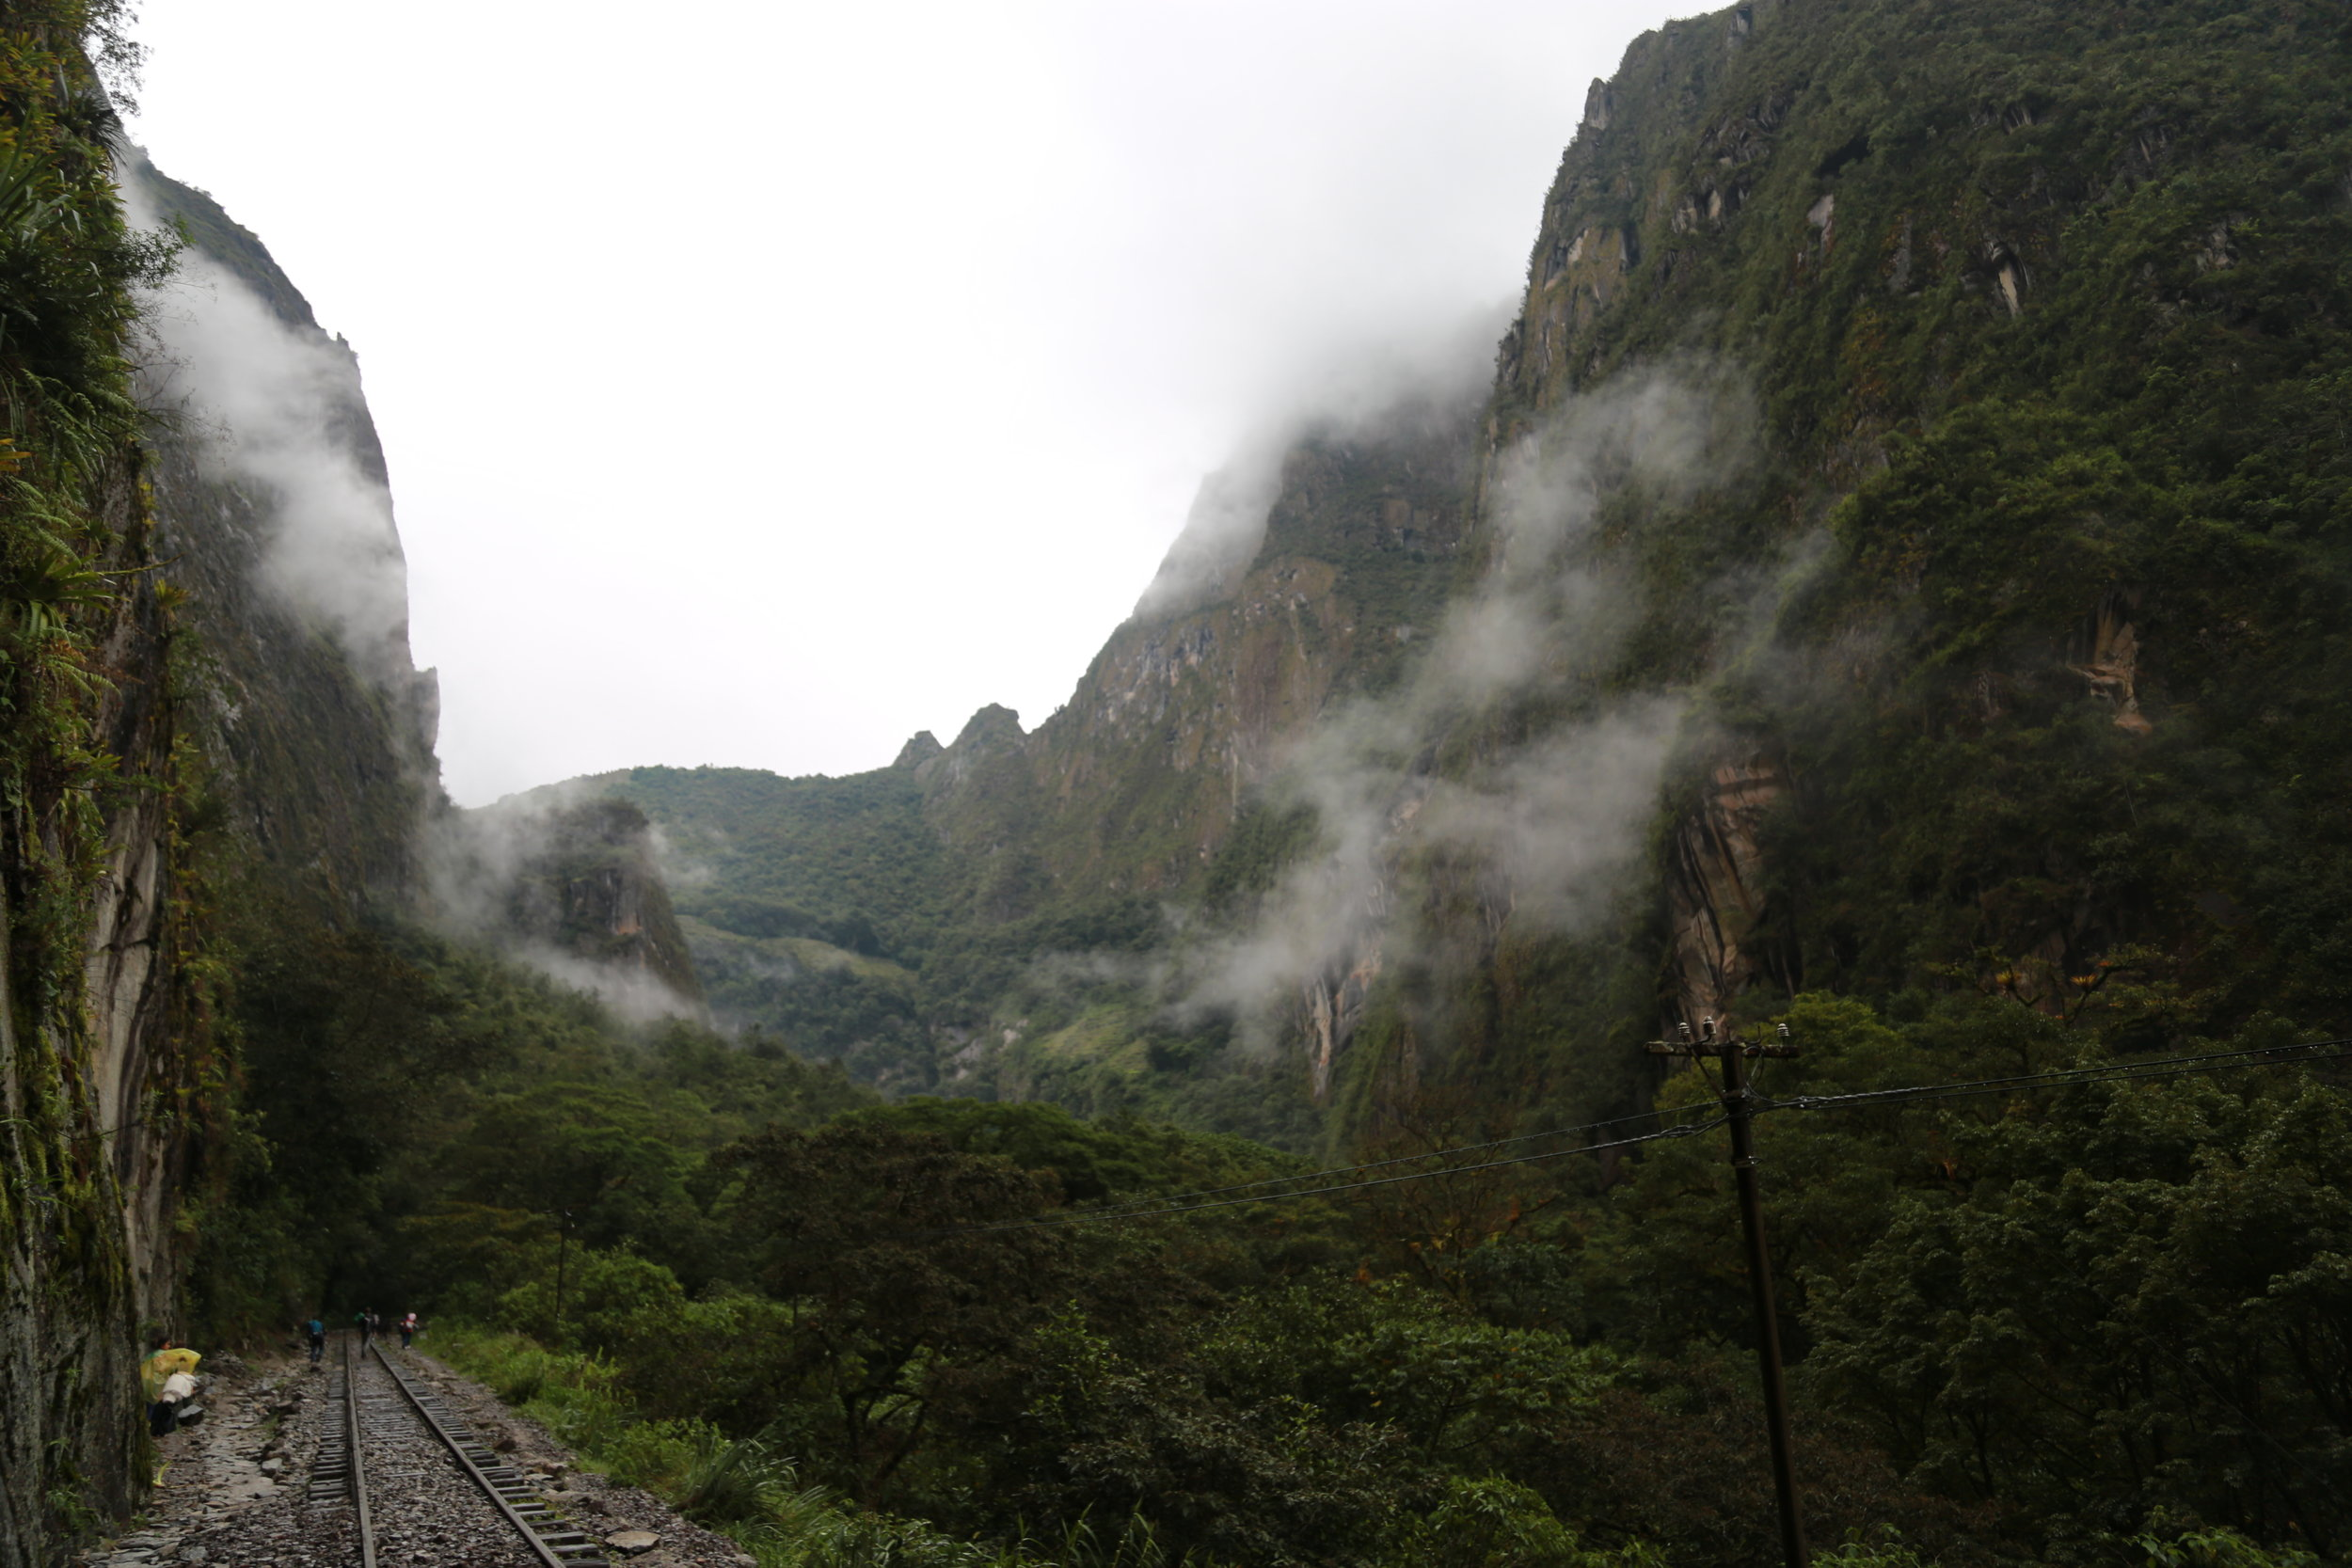 Final stretch from hidroelectrica to Aguas Calientes, Day 3 of Salkantay Trek to Machu Picchu.